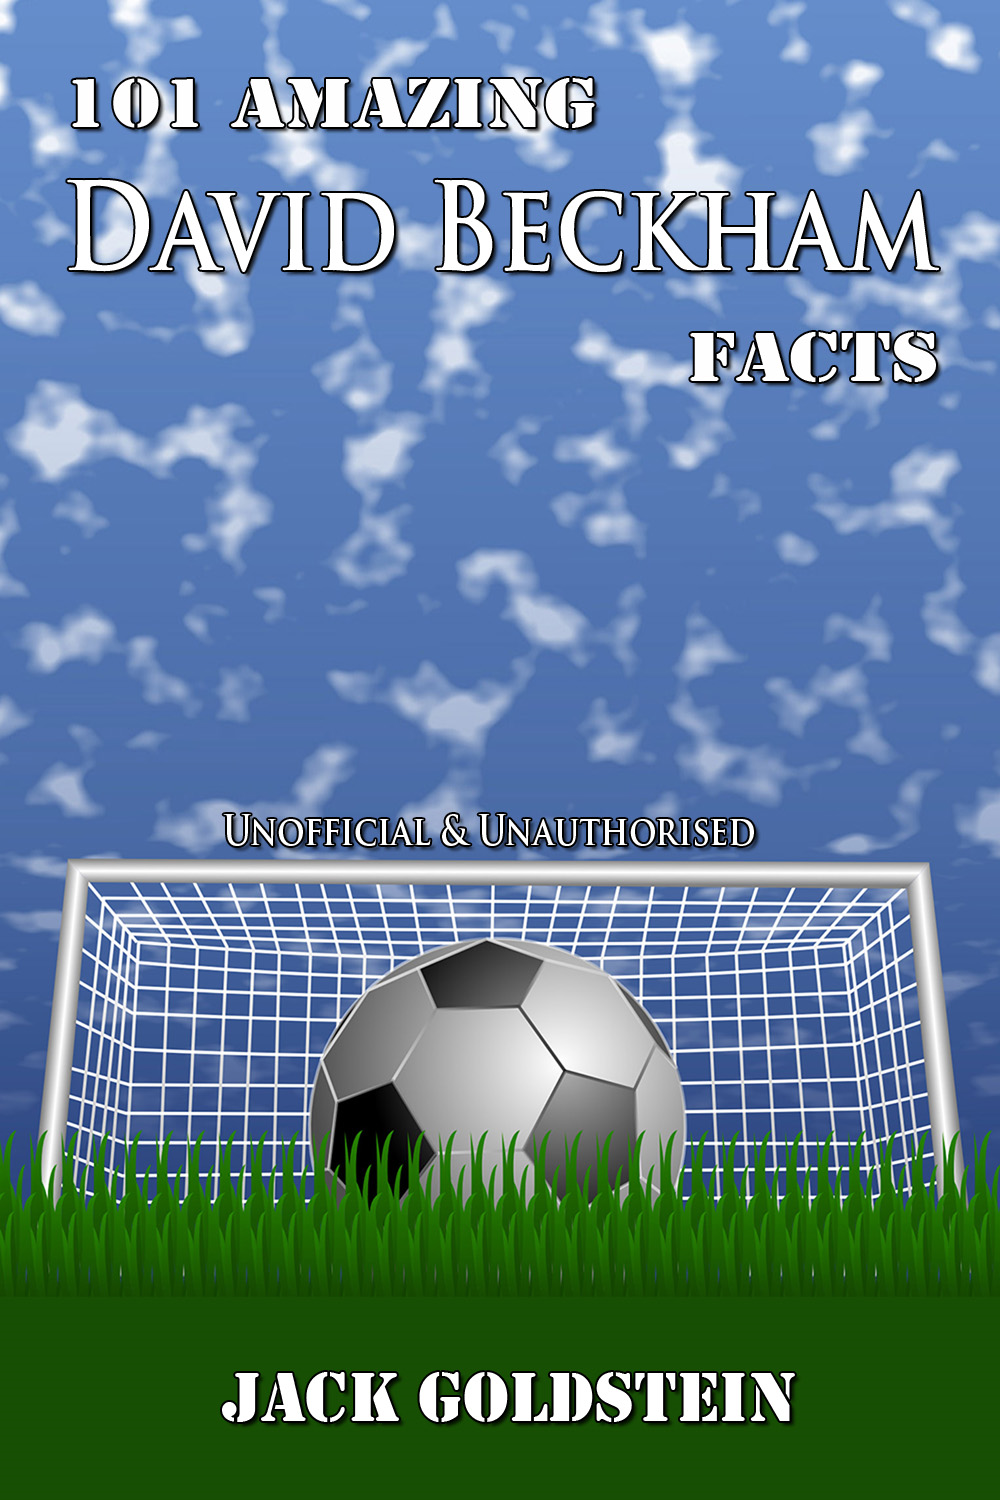 101 Amazing David Beckham Facts